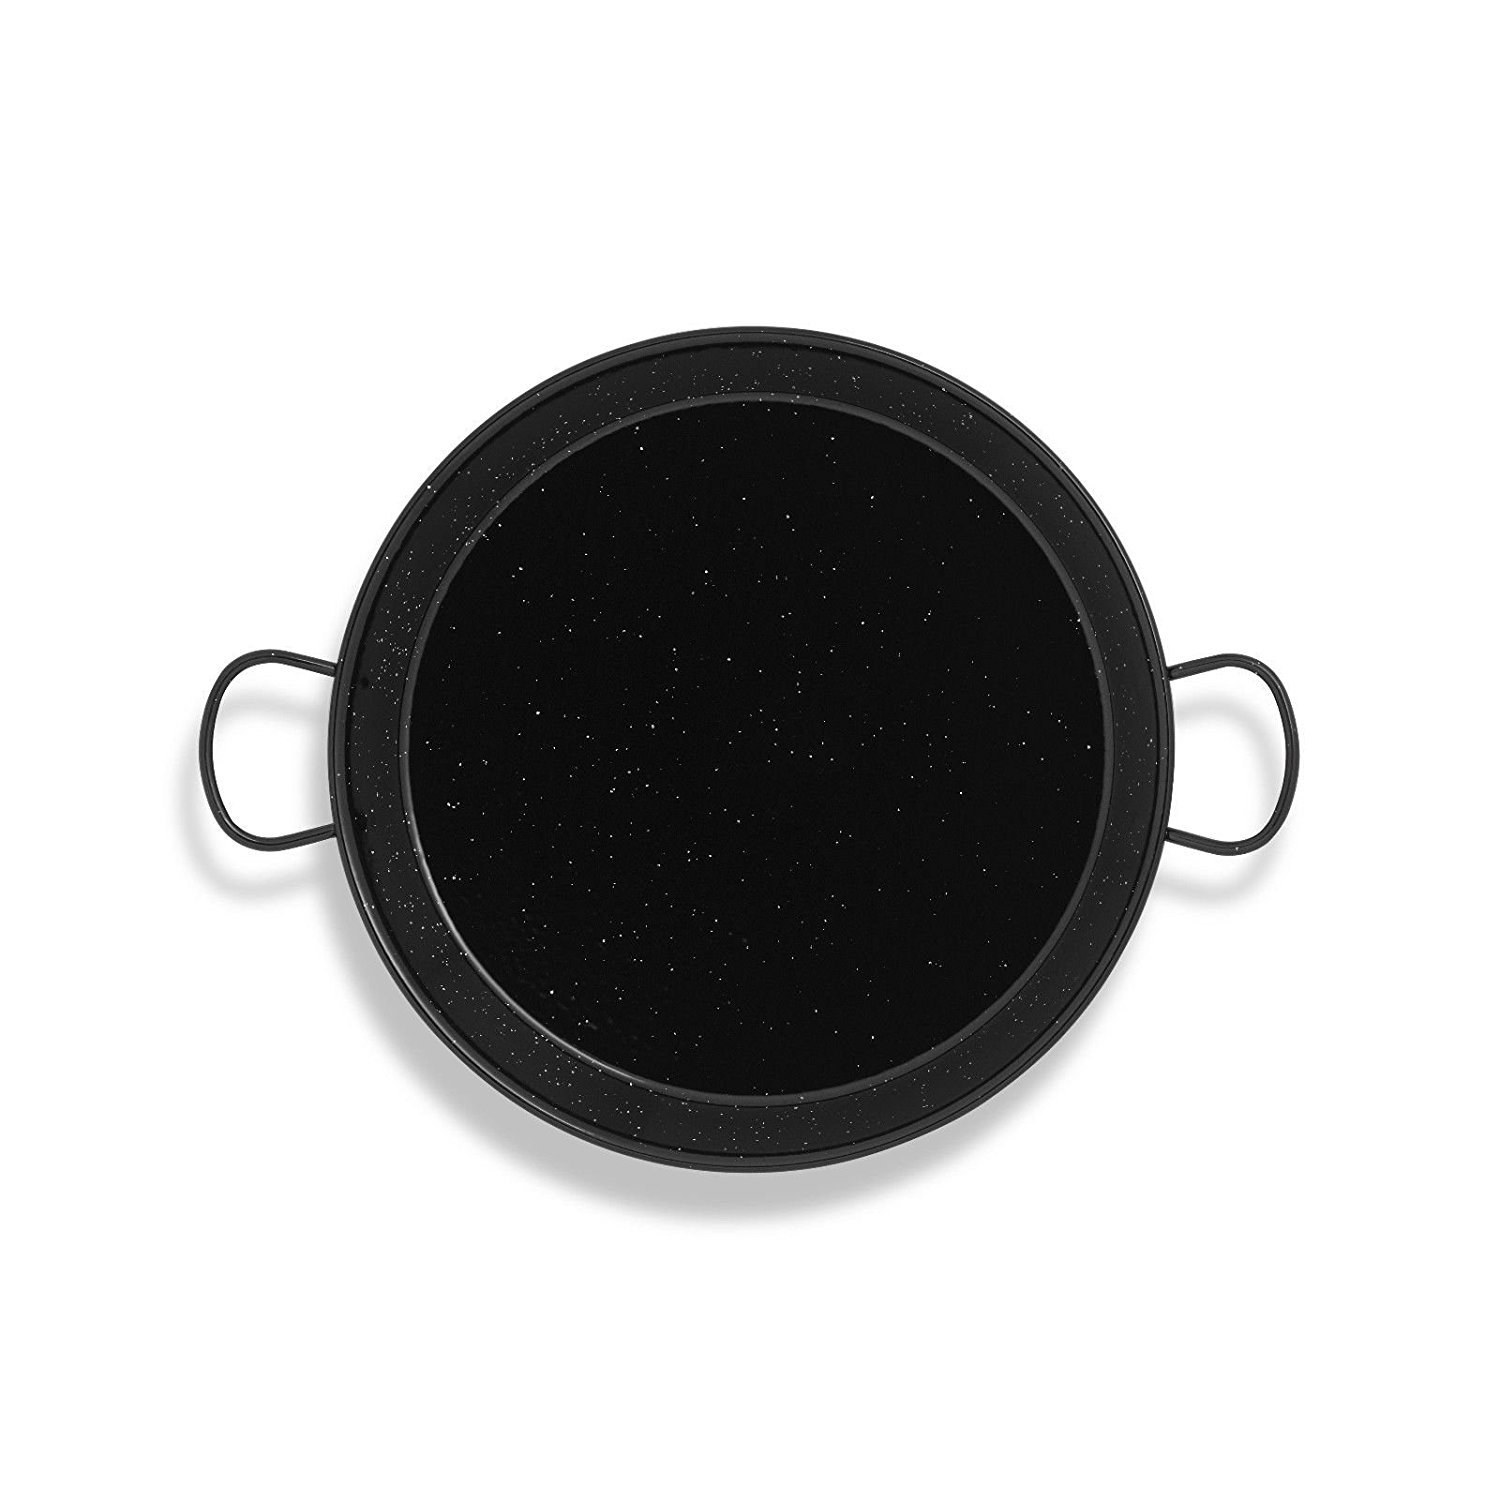 Paella Pan Enamelled Steel * * La Valenciana * * Made in Spain Various Sizes Ø38cm 8 raciones